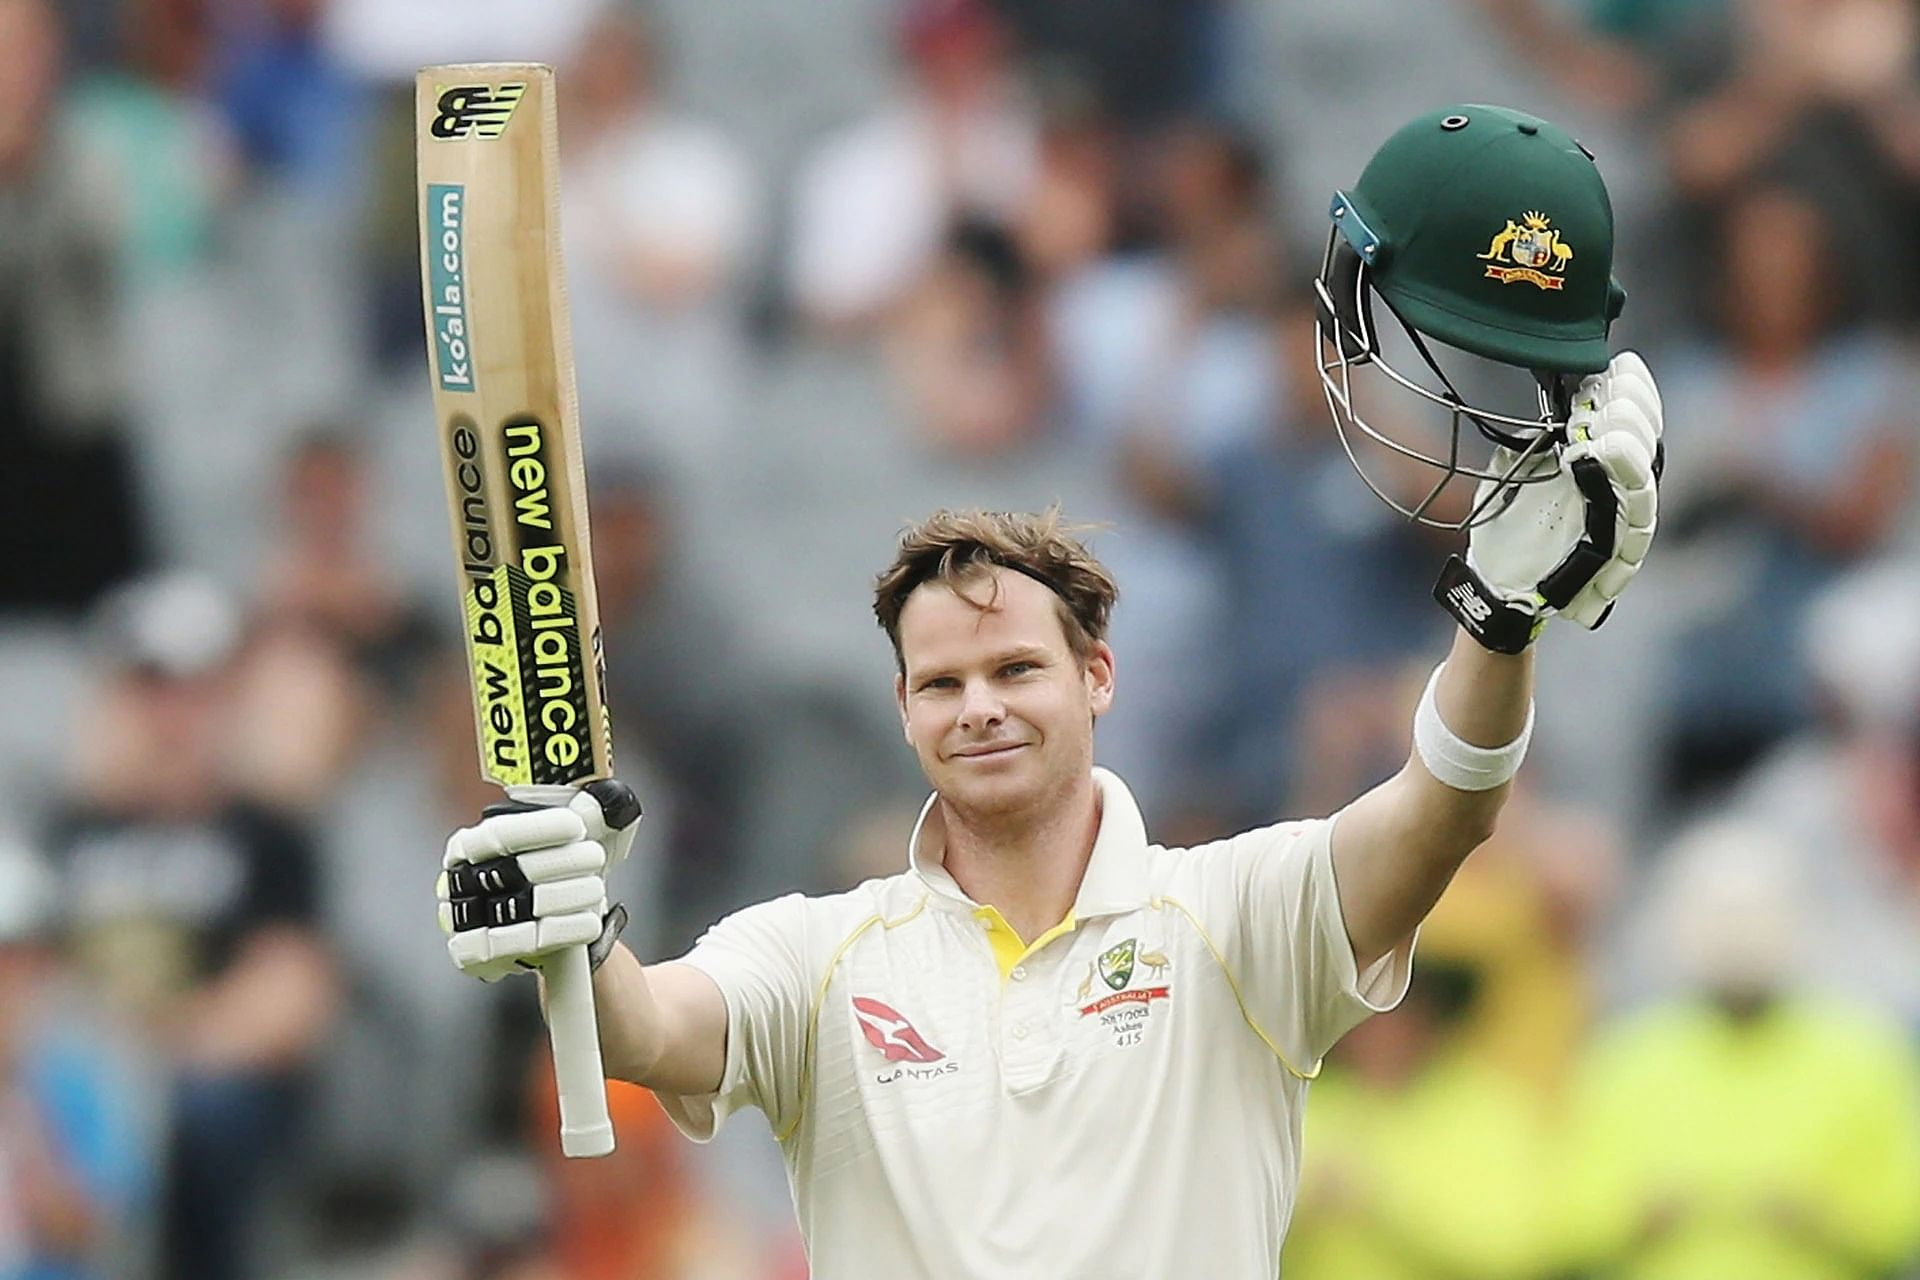 Steve Smith Might Become Australia's Test Skipper Once Again, Gets Huge Boost For Captaincy